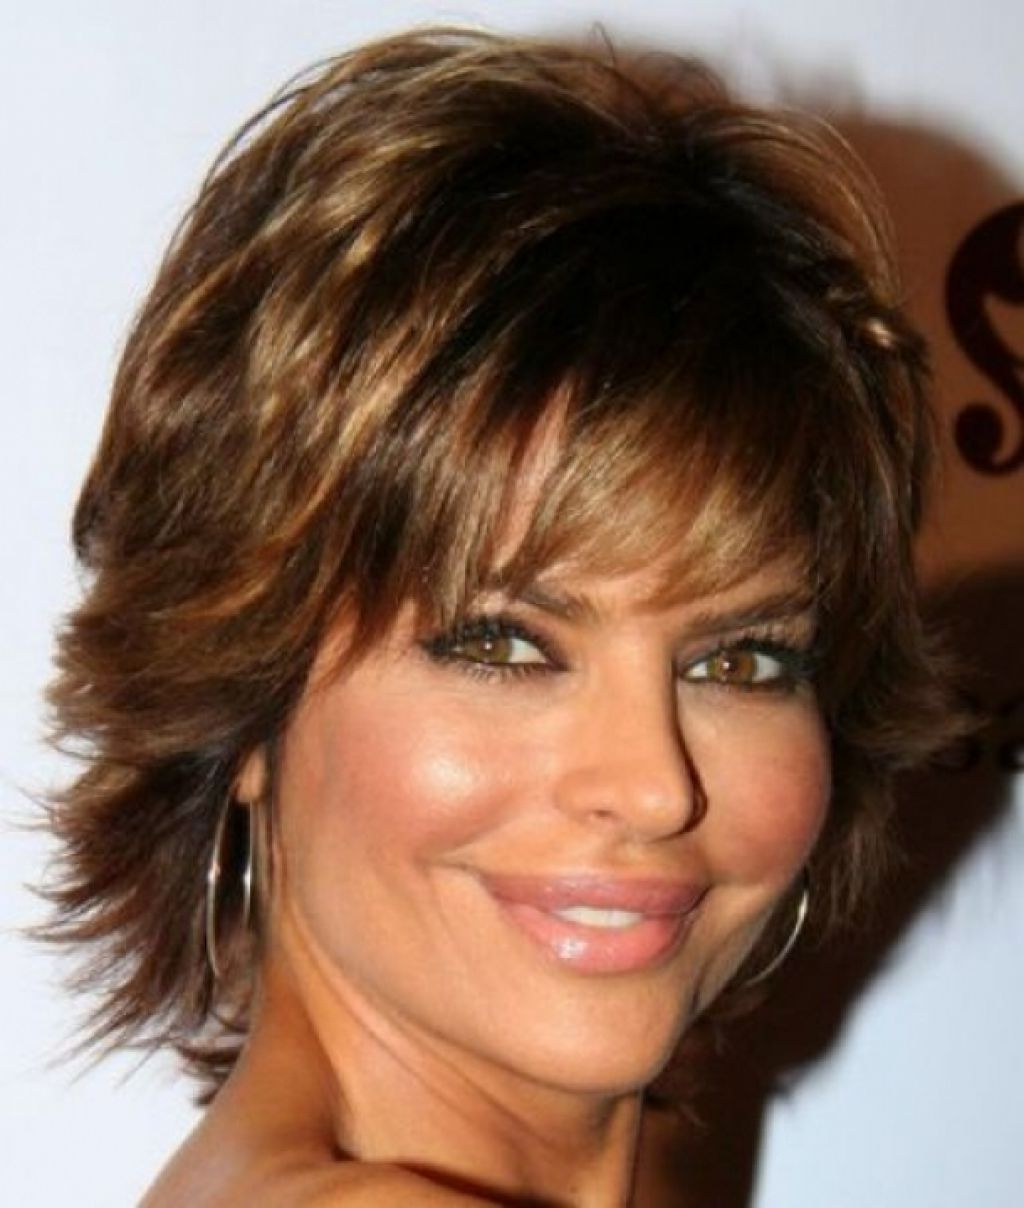 55 Short Hairstyles Over 50 Fine Hair Unique Short Hairstyle For With Regard To Short Hairstyles For Fine Hair Over  (View 15 of 25)